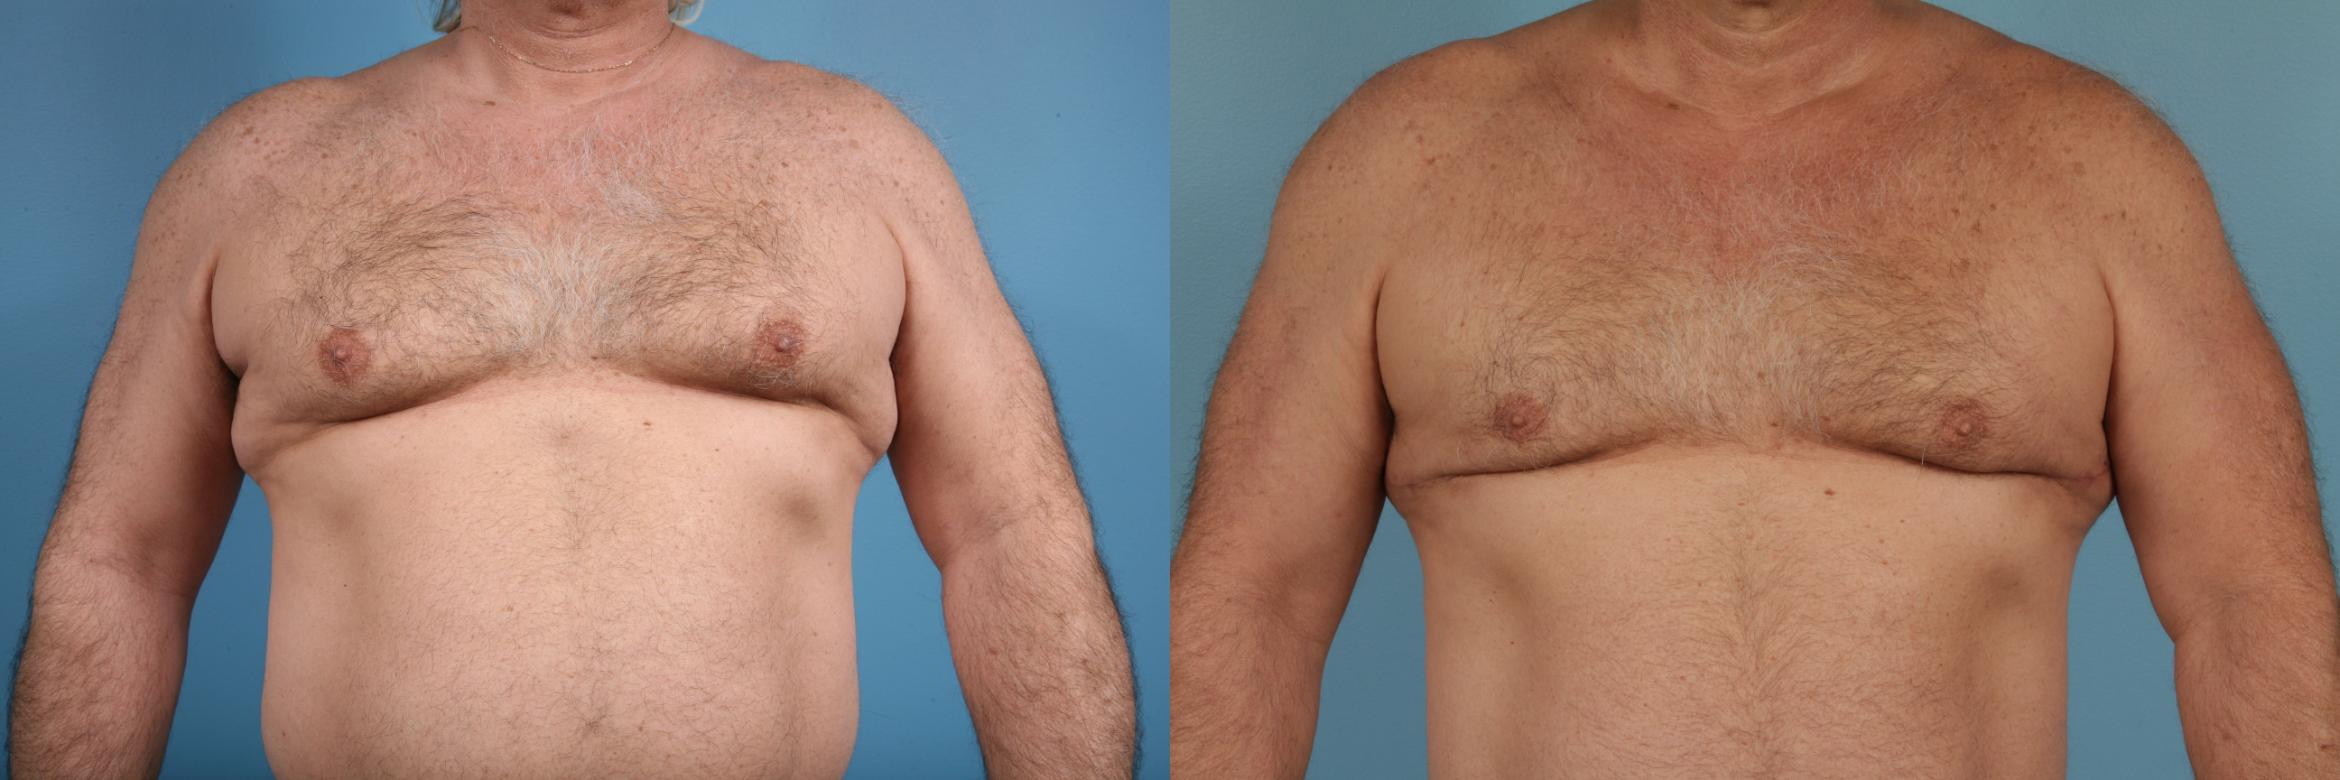 Male Breast Reduction (Gynecomastia) Case 174 Before & After View #1 | Chicago, IL | TLKM Plastic Surgery